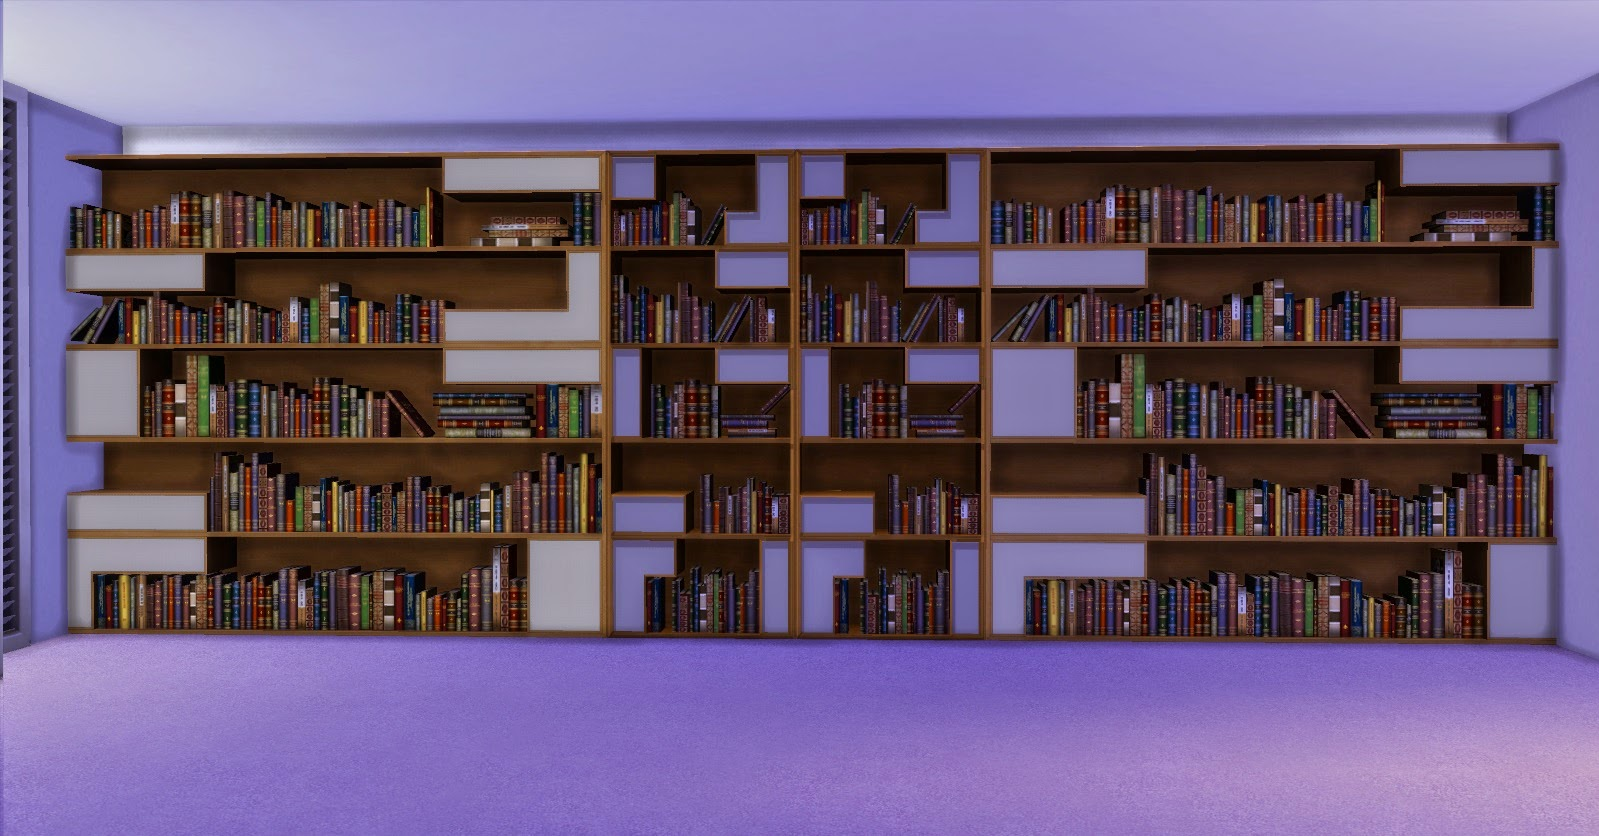 Very Impressive portraiture of My Sims 4 Blog: Poetic Bookshelf by AdonisPluto with #52408B color and 1599x836 pixels